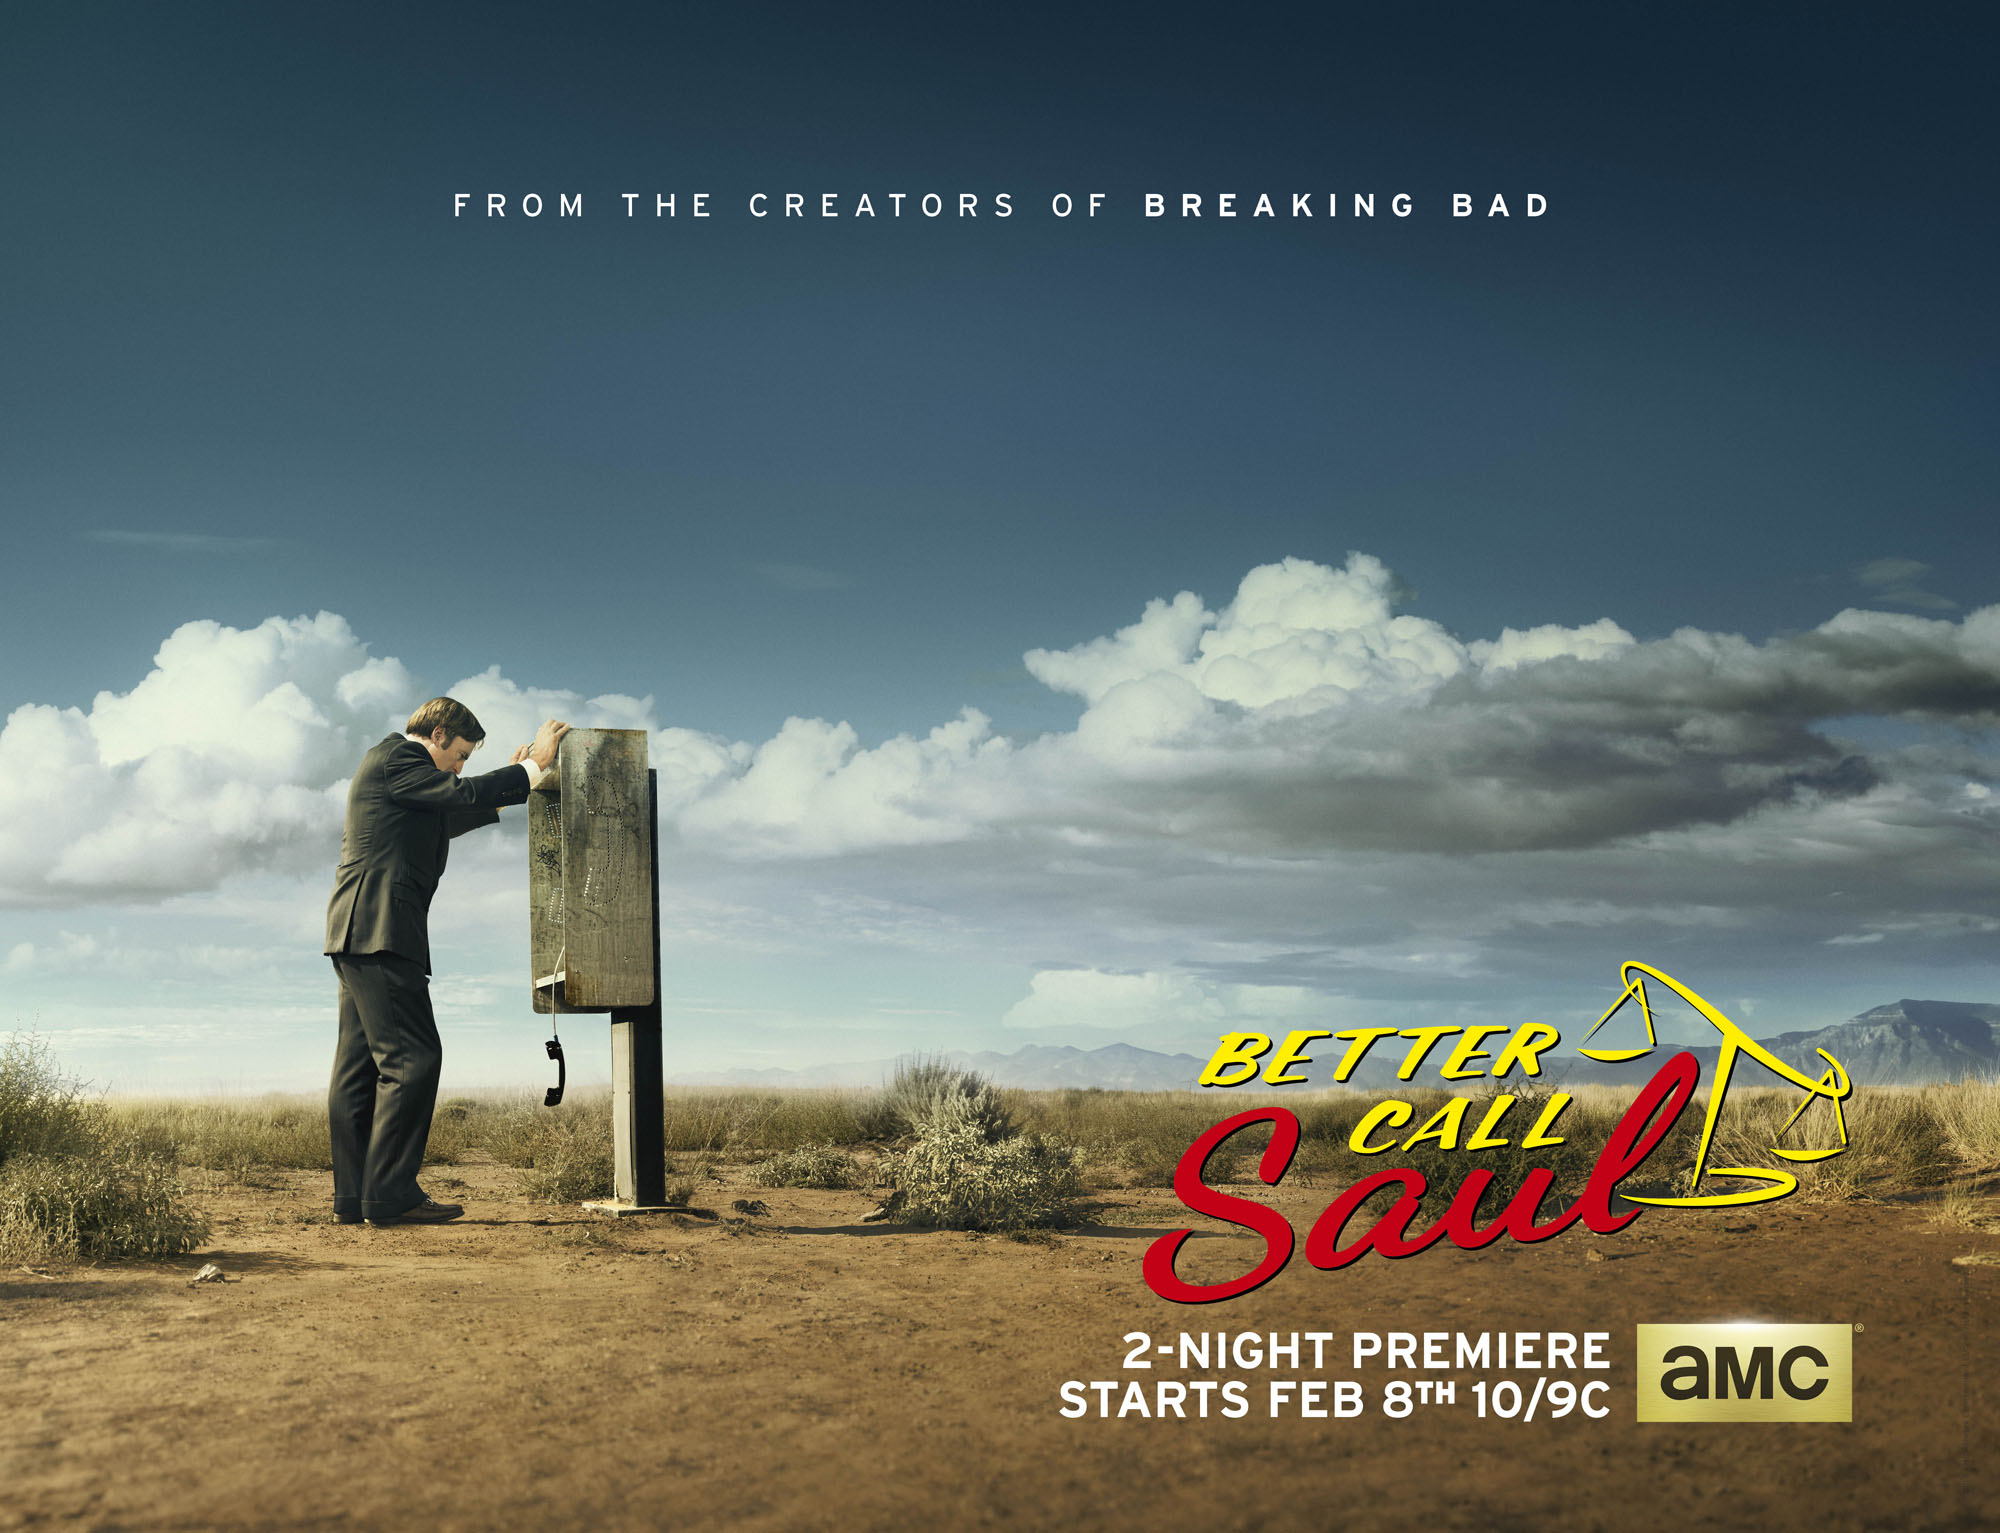 See Better Call Saul Official Poster